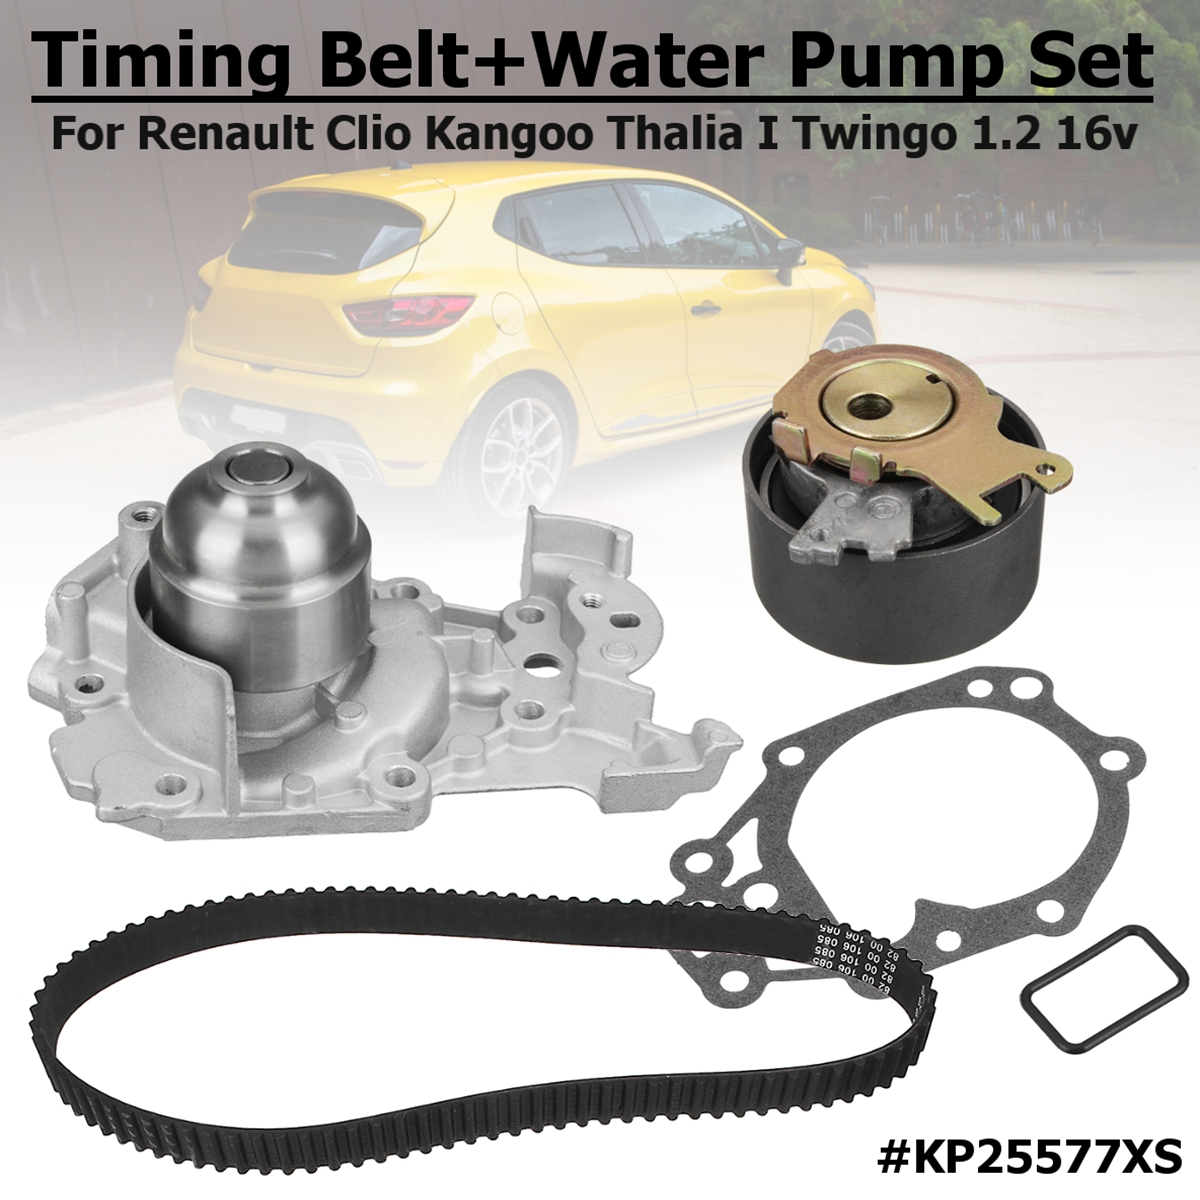 Aliexpress.com : Buy New 1.2 16v Gates Timing Belt+Water Pump #KP25577XS  For Renault Clio Clio Grandtour Kangoo Modus/Grand Modus Thalia Thalia I  from ...